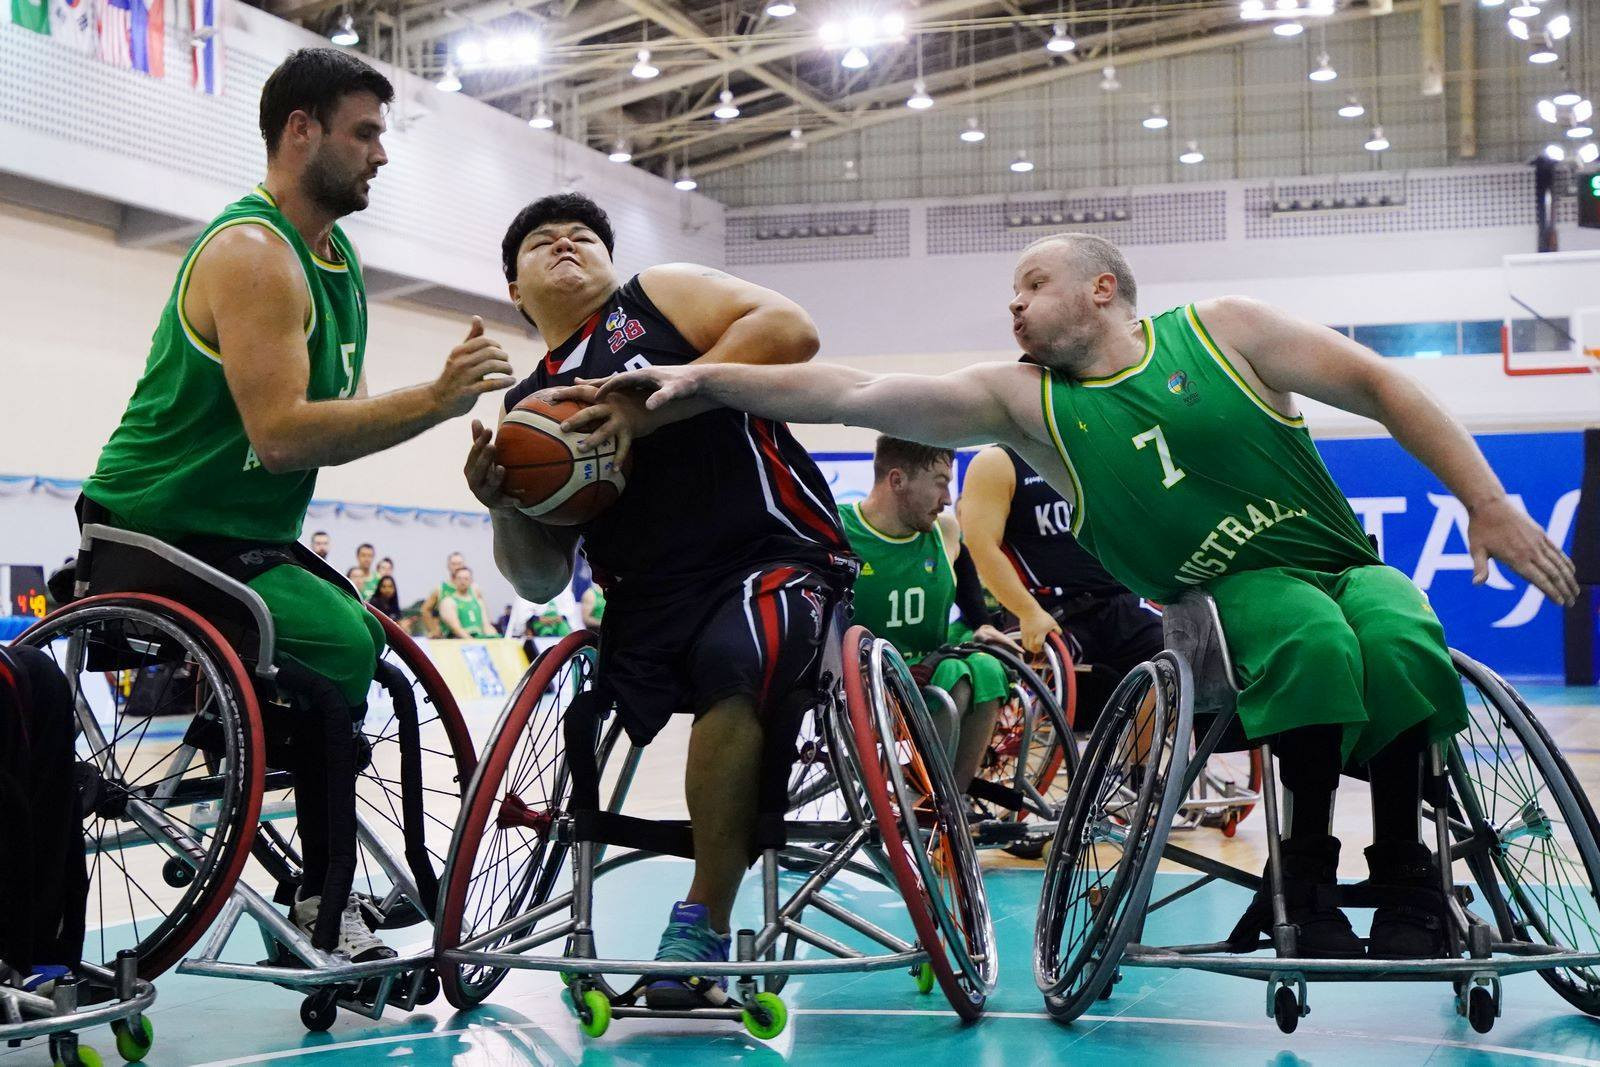 The number of players in a 3x3 wheelchair basketball team has been reduced from 5 to 4 ©IWBF